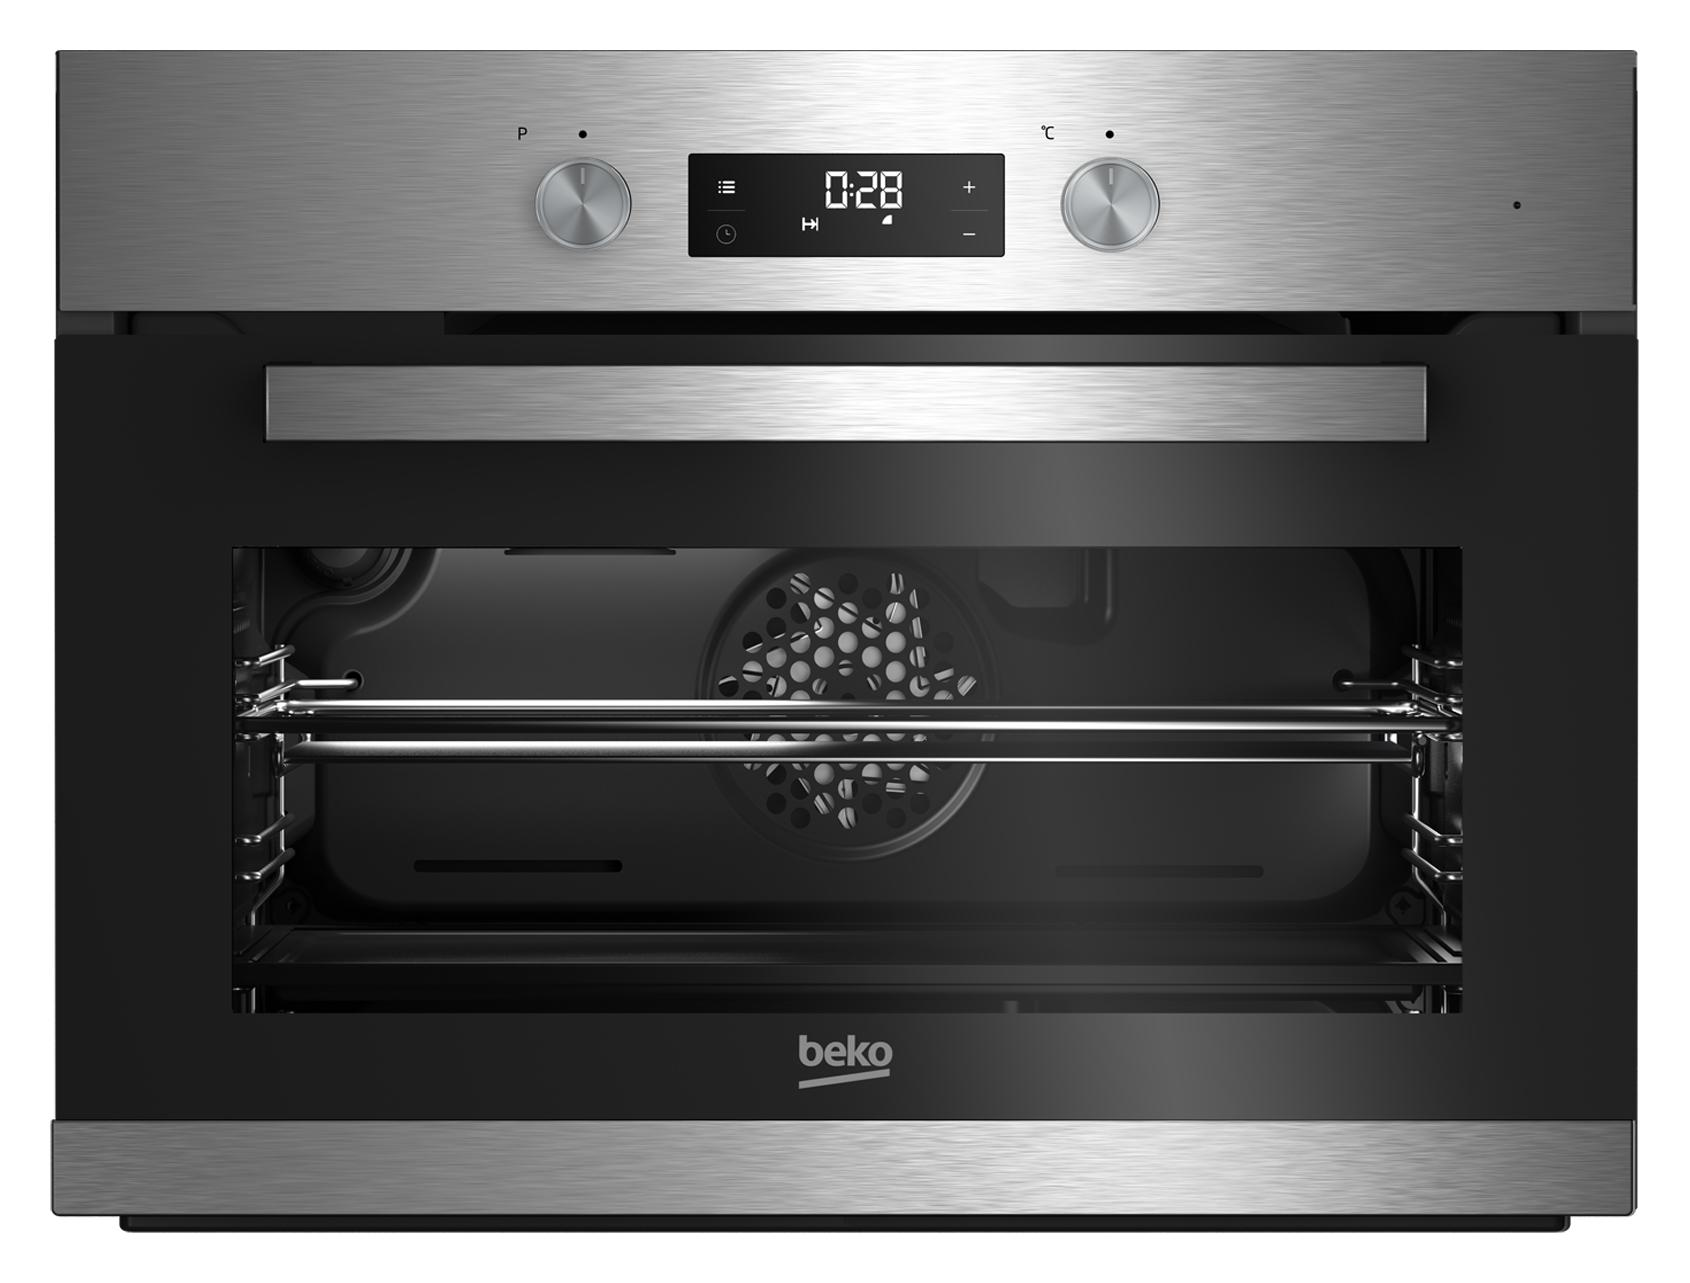 backofen mit mikrowelle siemens affordable ebcslcn electrolux cm chrom with backofen mit. Black Bedroom Furniture Sets. Home Design Ideas